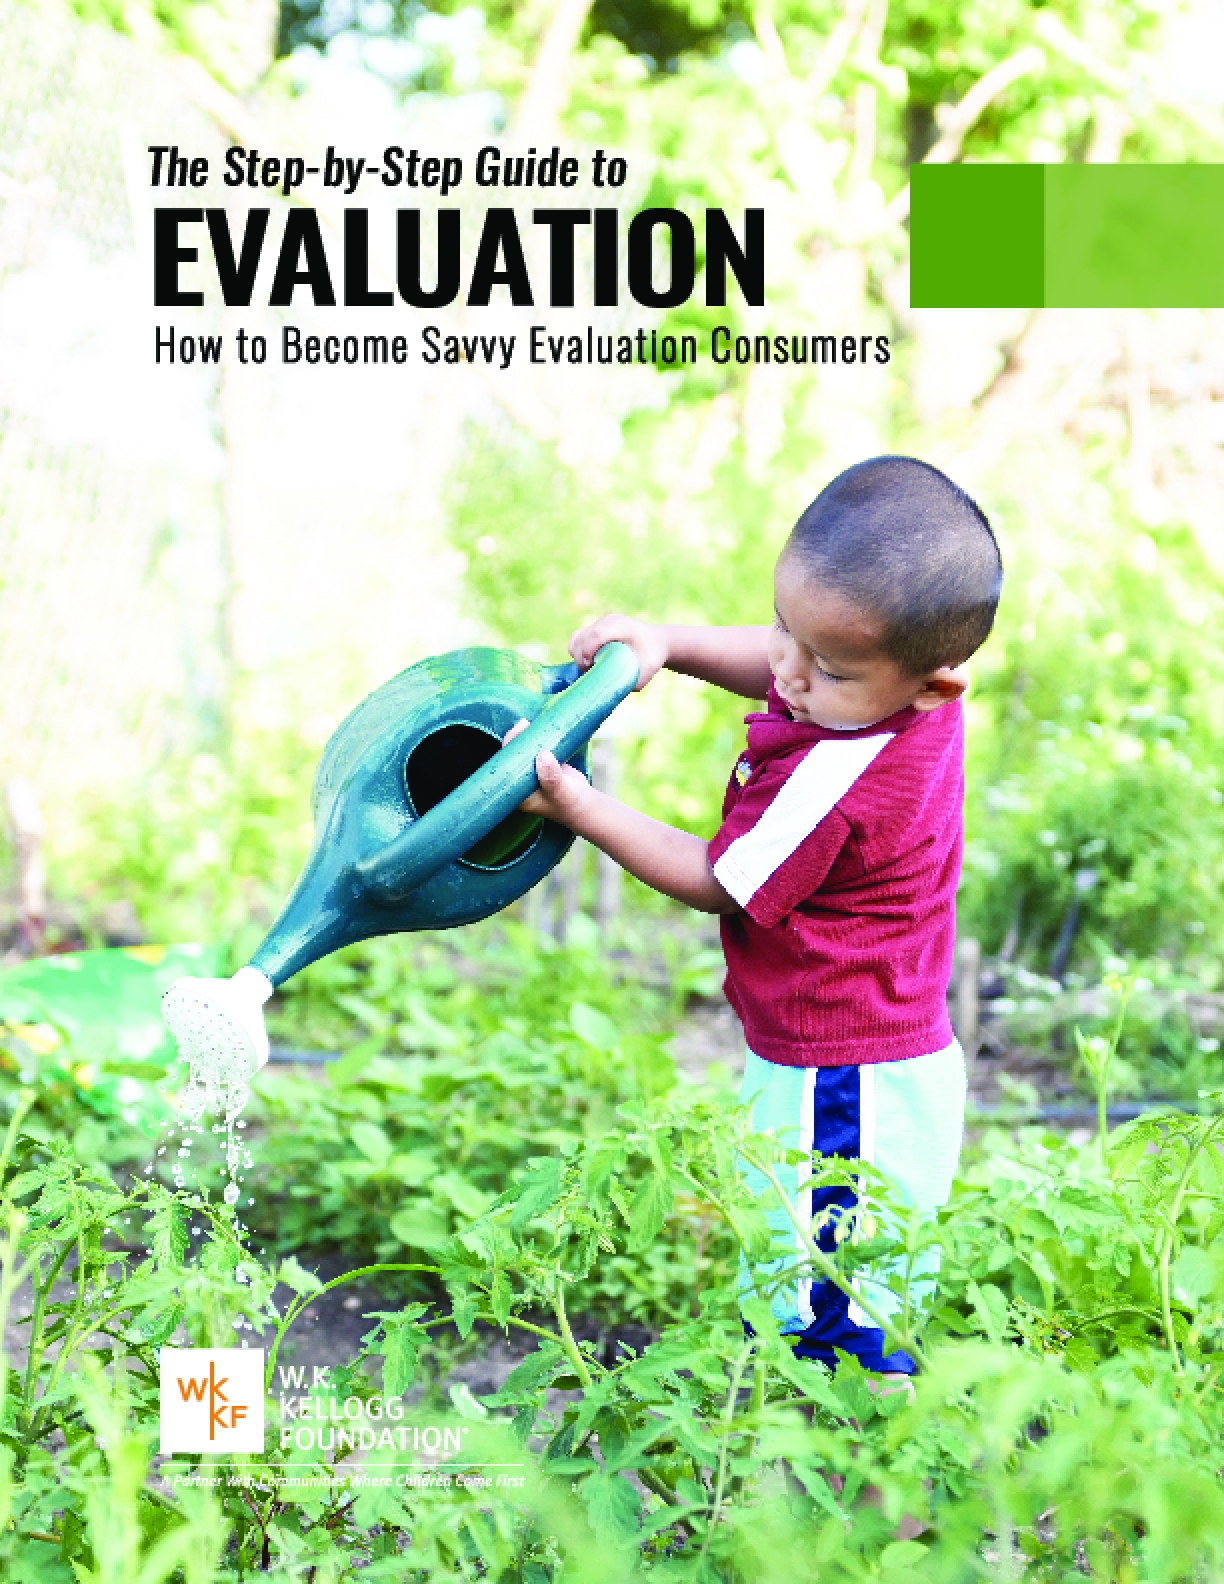 The Step-by-Step Guide to Evaluation: How to Become Savvy Evaluation Consumers